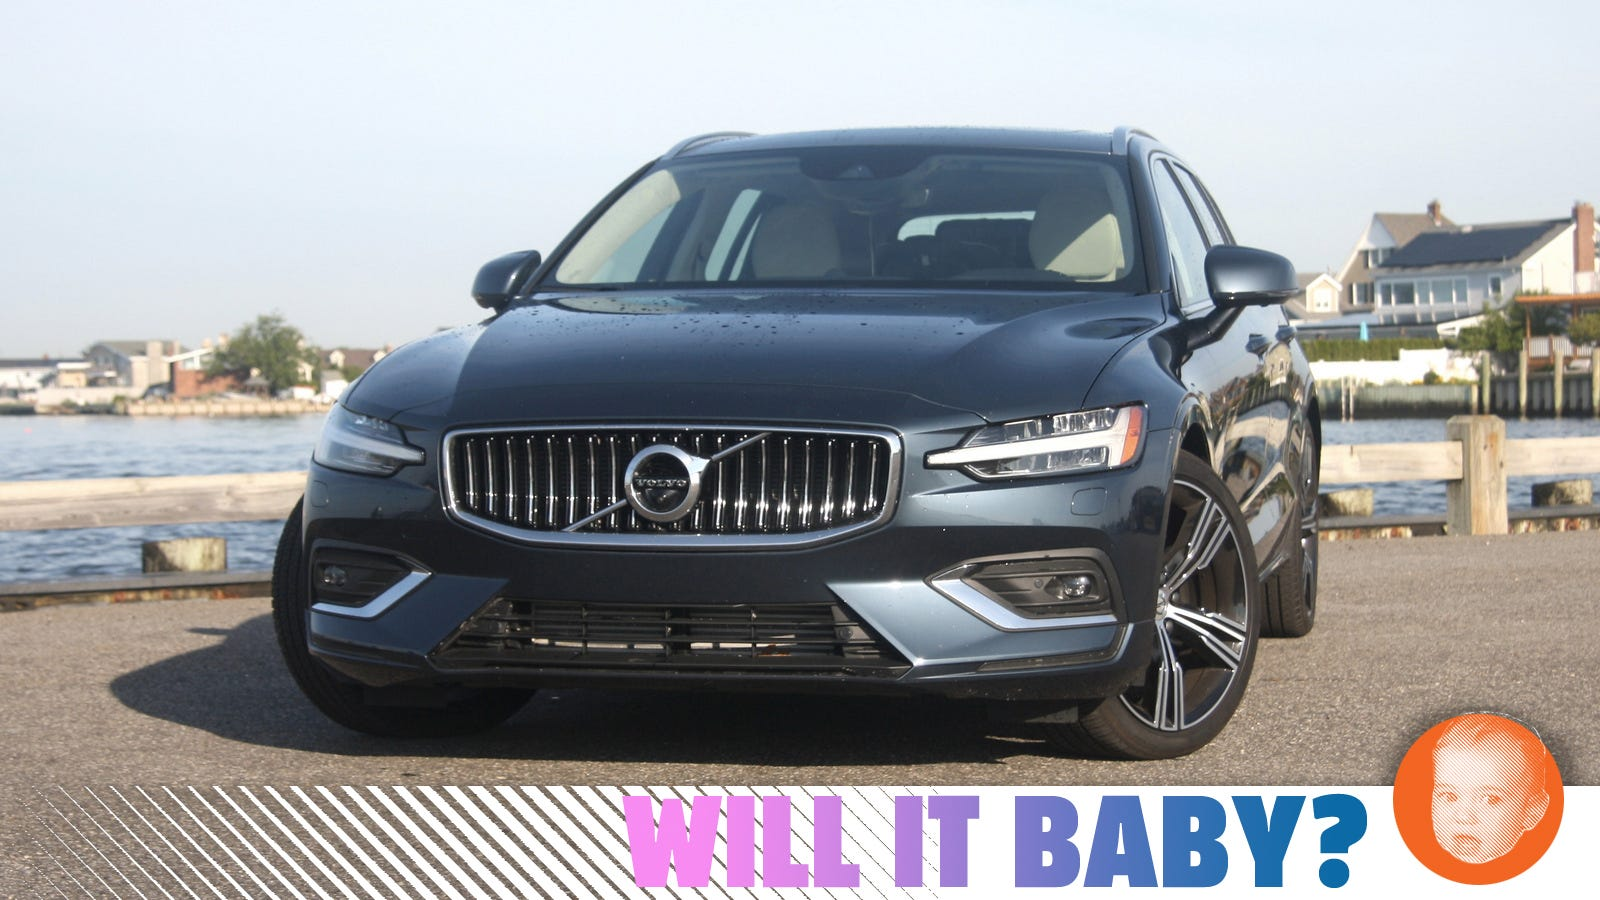 2019 Volvo XC70 Crossover SUV Review >> The 2019 Volvo V60 Is Not The Ideal Family Wagon It Seems Like In Theory